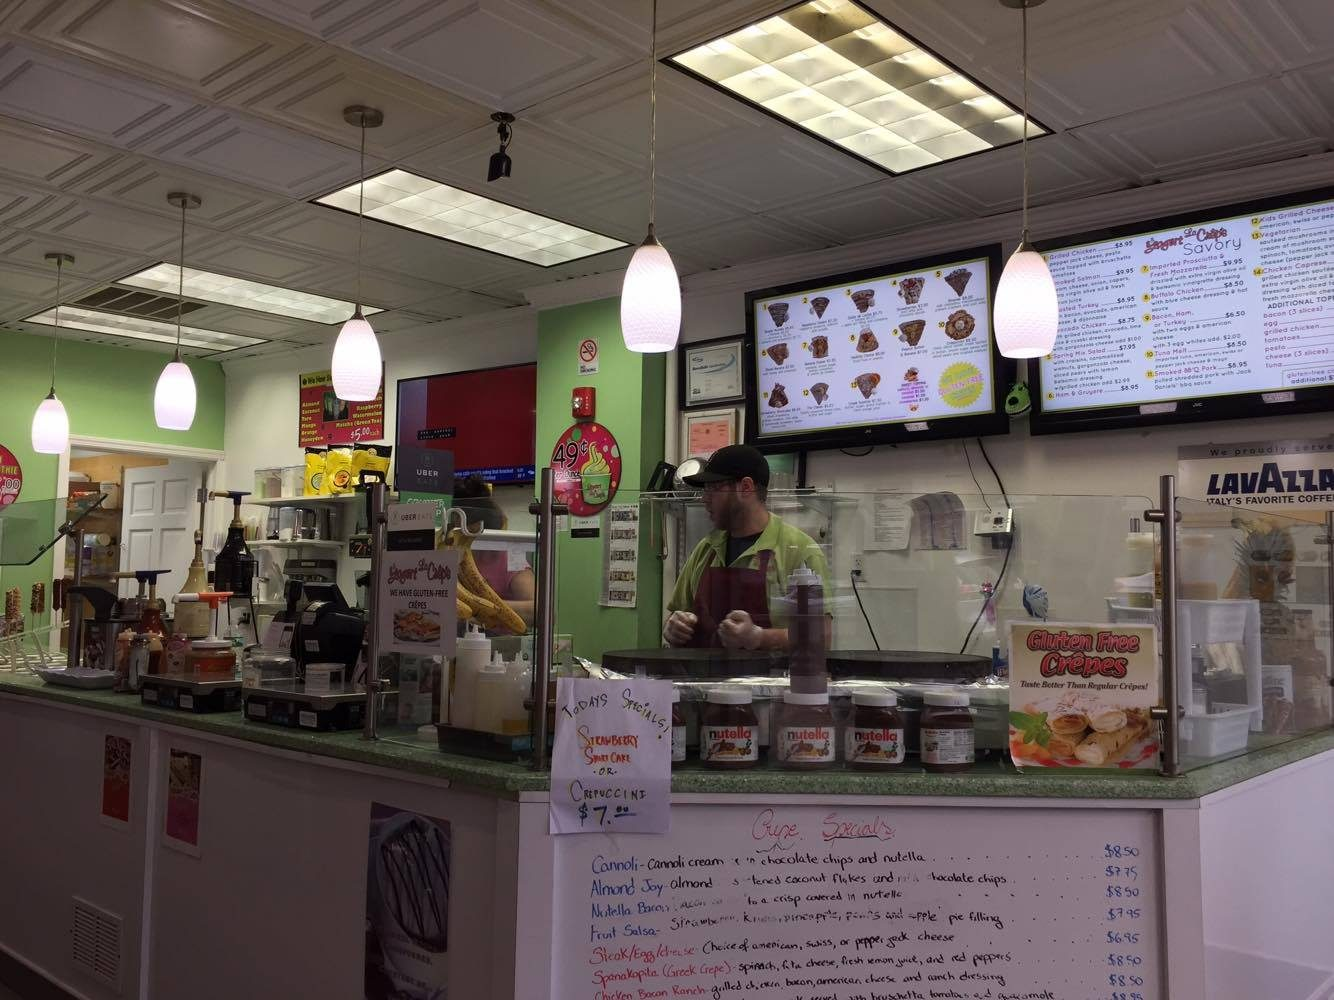 Local crepe shop serves students after a long day at school. Yogurt Le Crepe has been in business for 5 years.